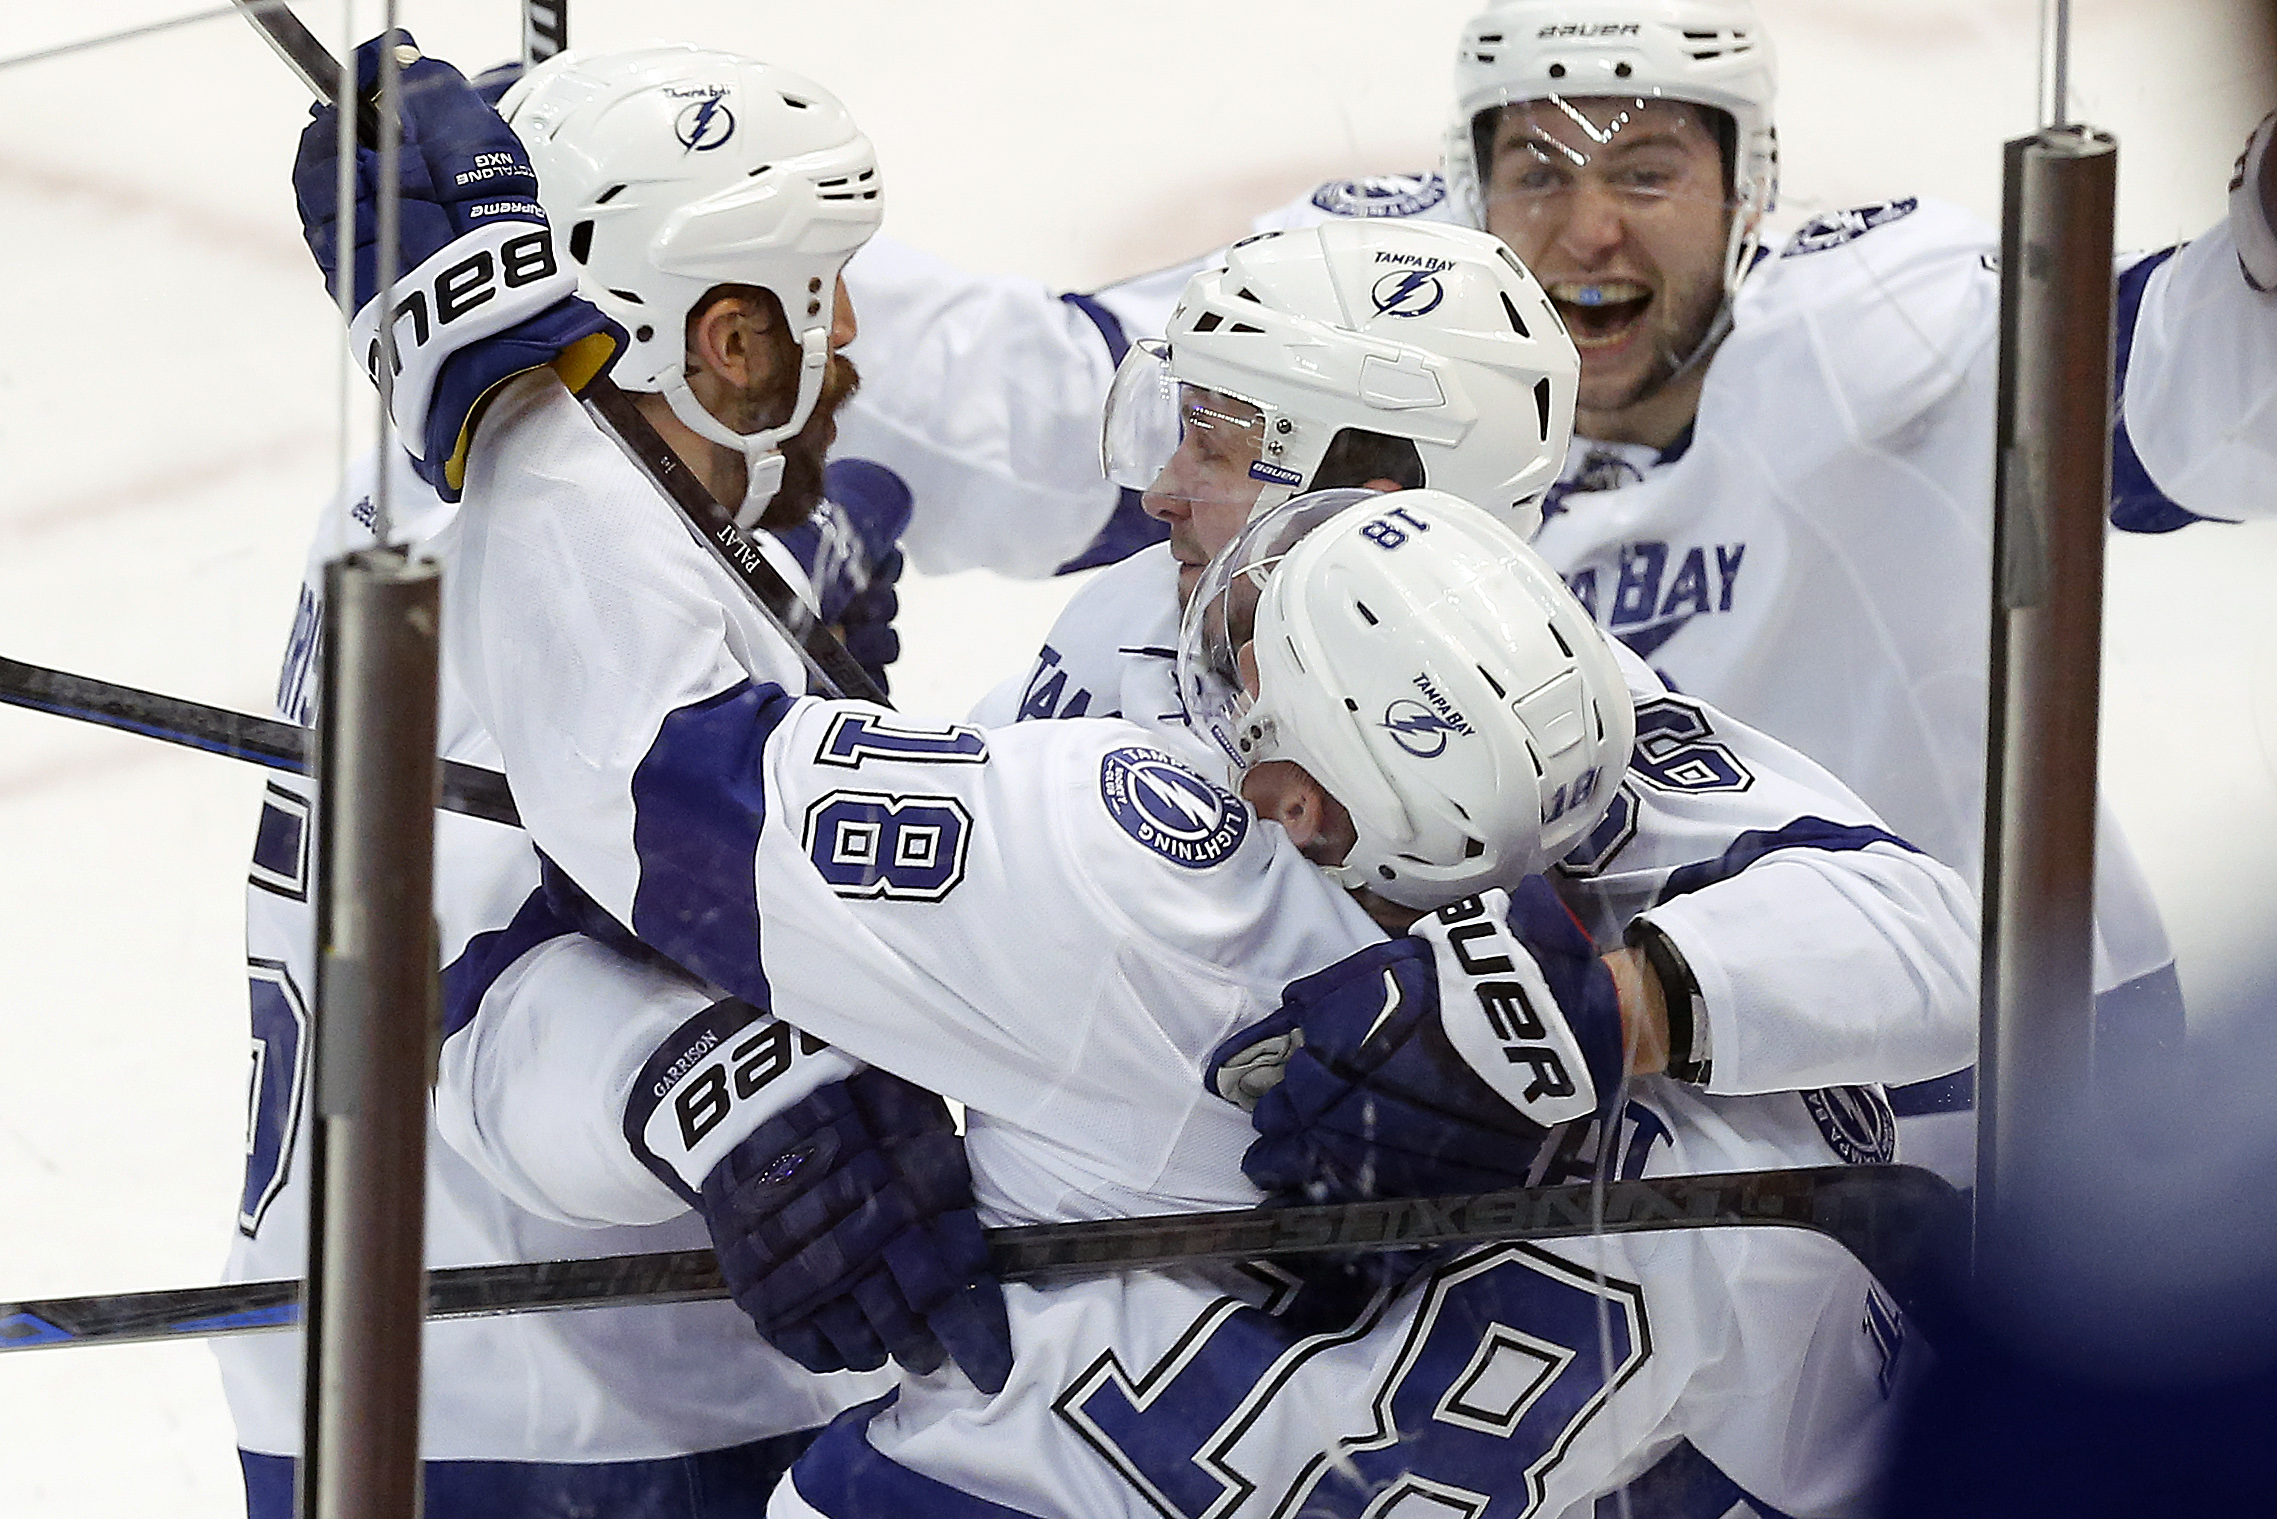 Tampa Bay Lightning left wing Ondrej Palat (18) celebrates his goal against the Detroit Red Wings during the third period of Game 4 of a first-round NHL Stanley Cup hockey playoff series Thursday, April 23, 2015, in Detroit. (AP Photo/Paul Sancya)